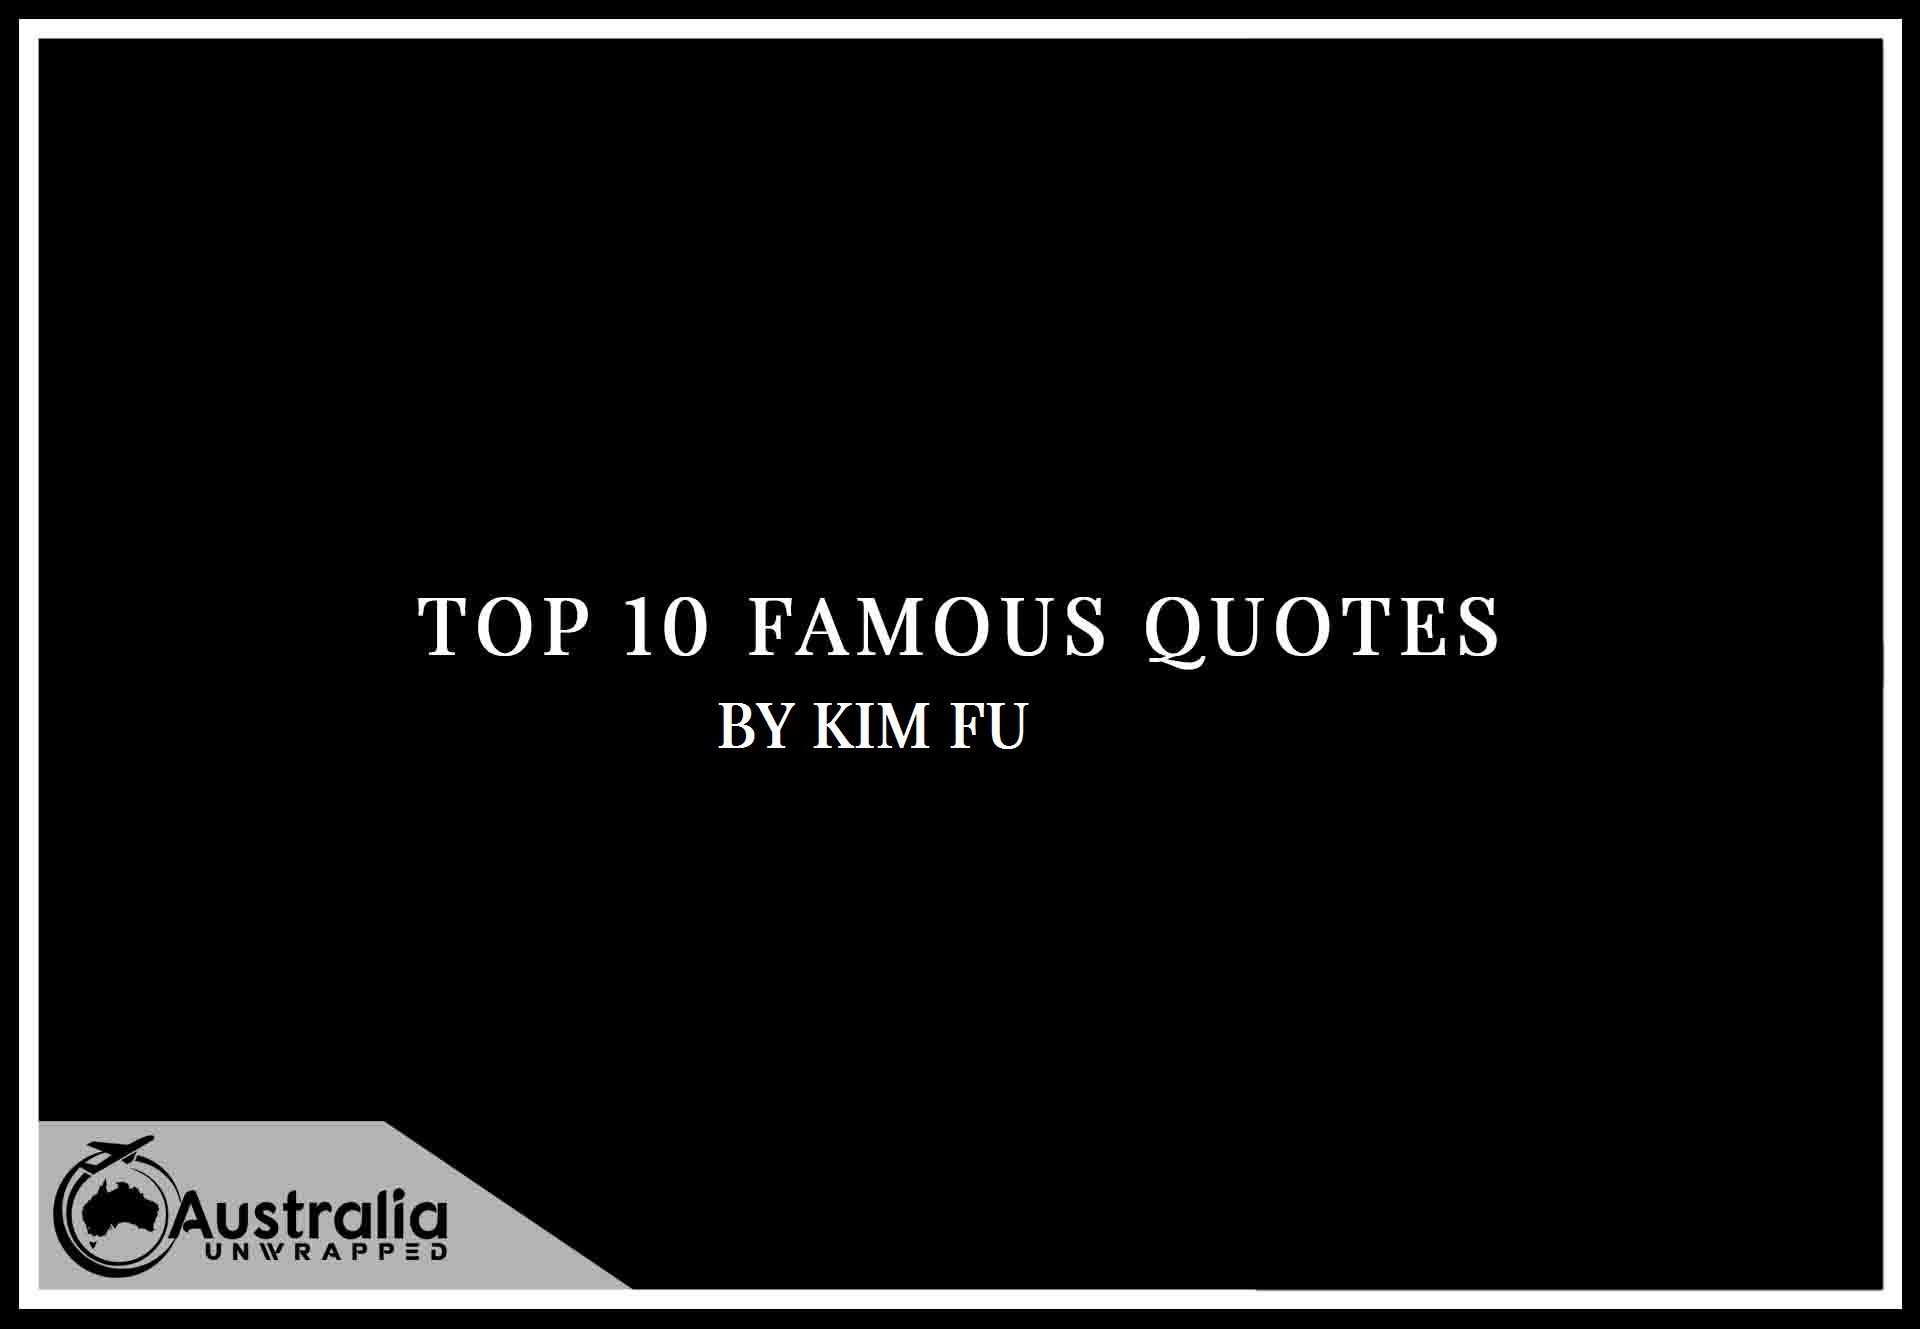 Kim Fu's Top 10 Popular and Famous Quotes